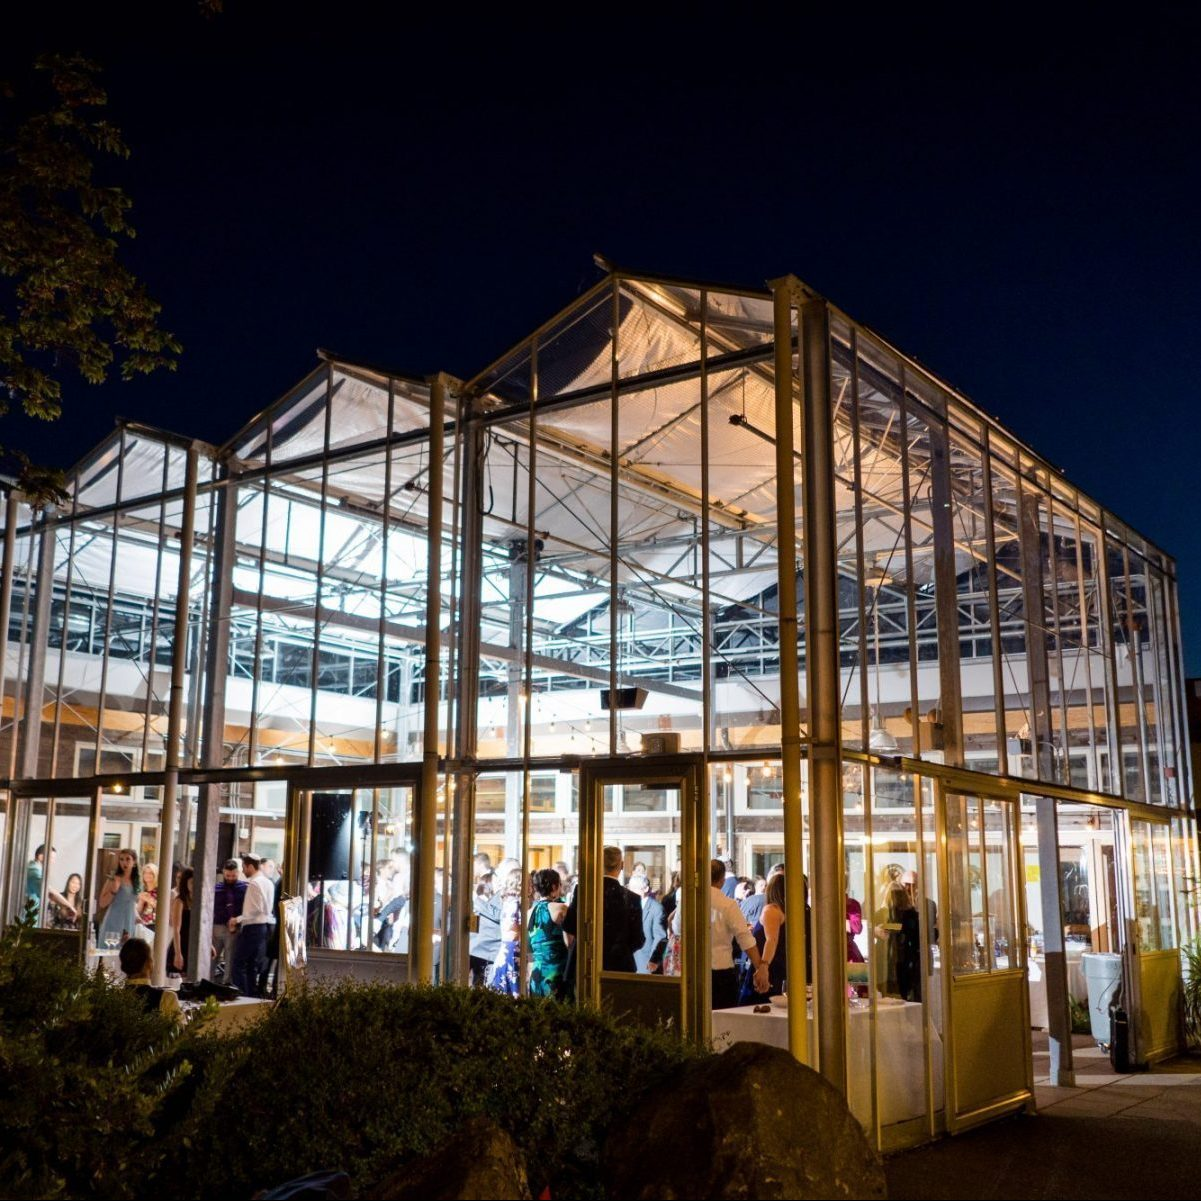 An all glass atrium lit up at night with guests mingling inside